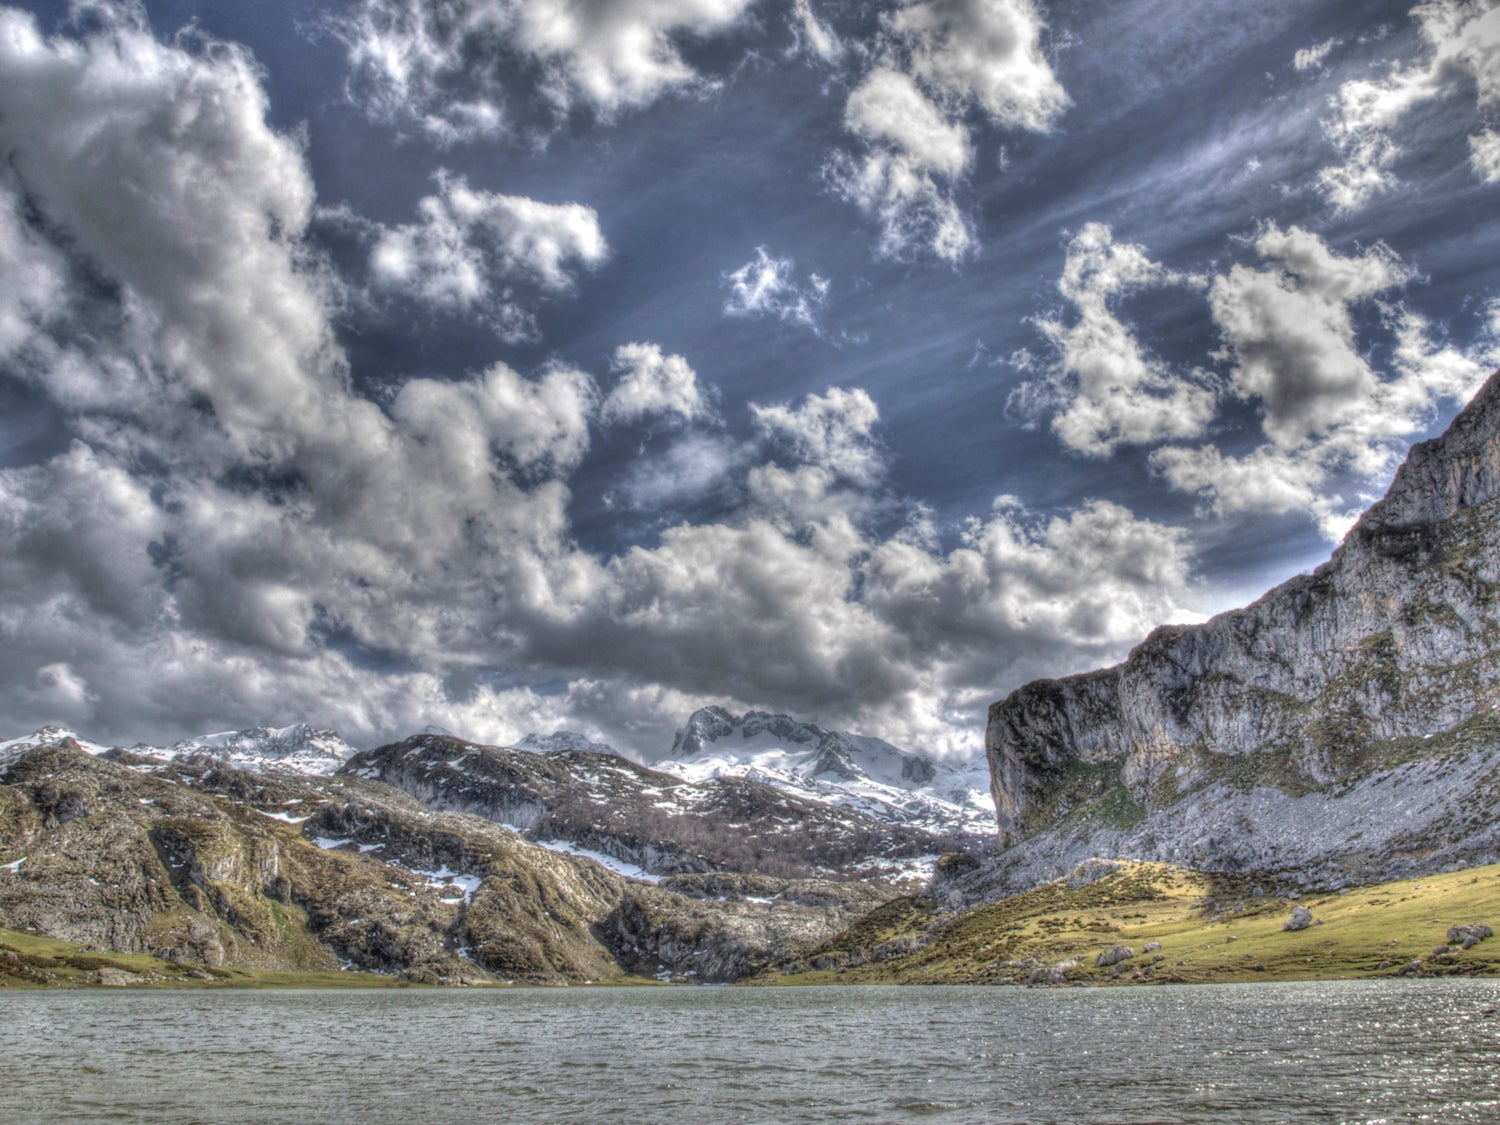 Wave in The Lakes of Covadonga - Enol and Ercina lakes